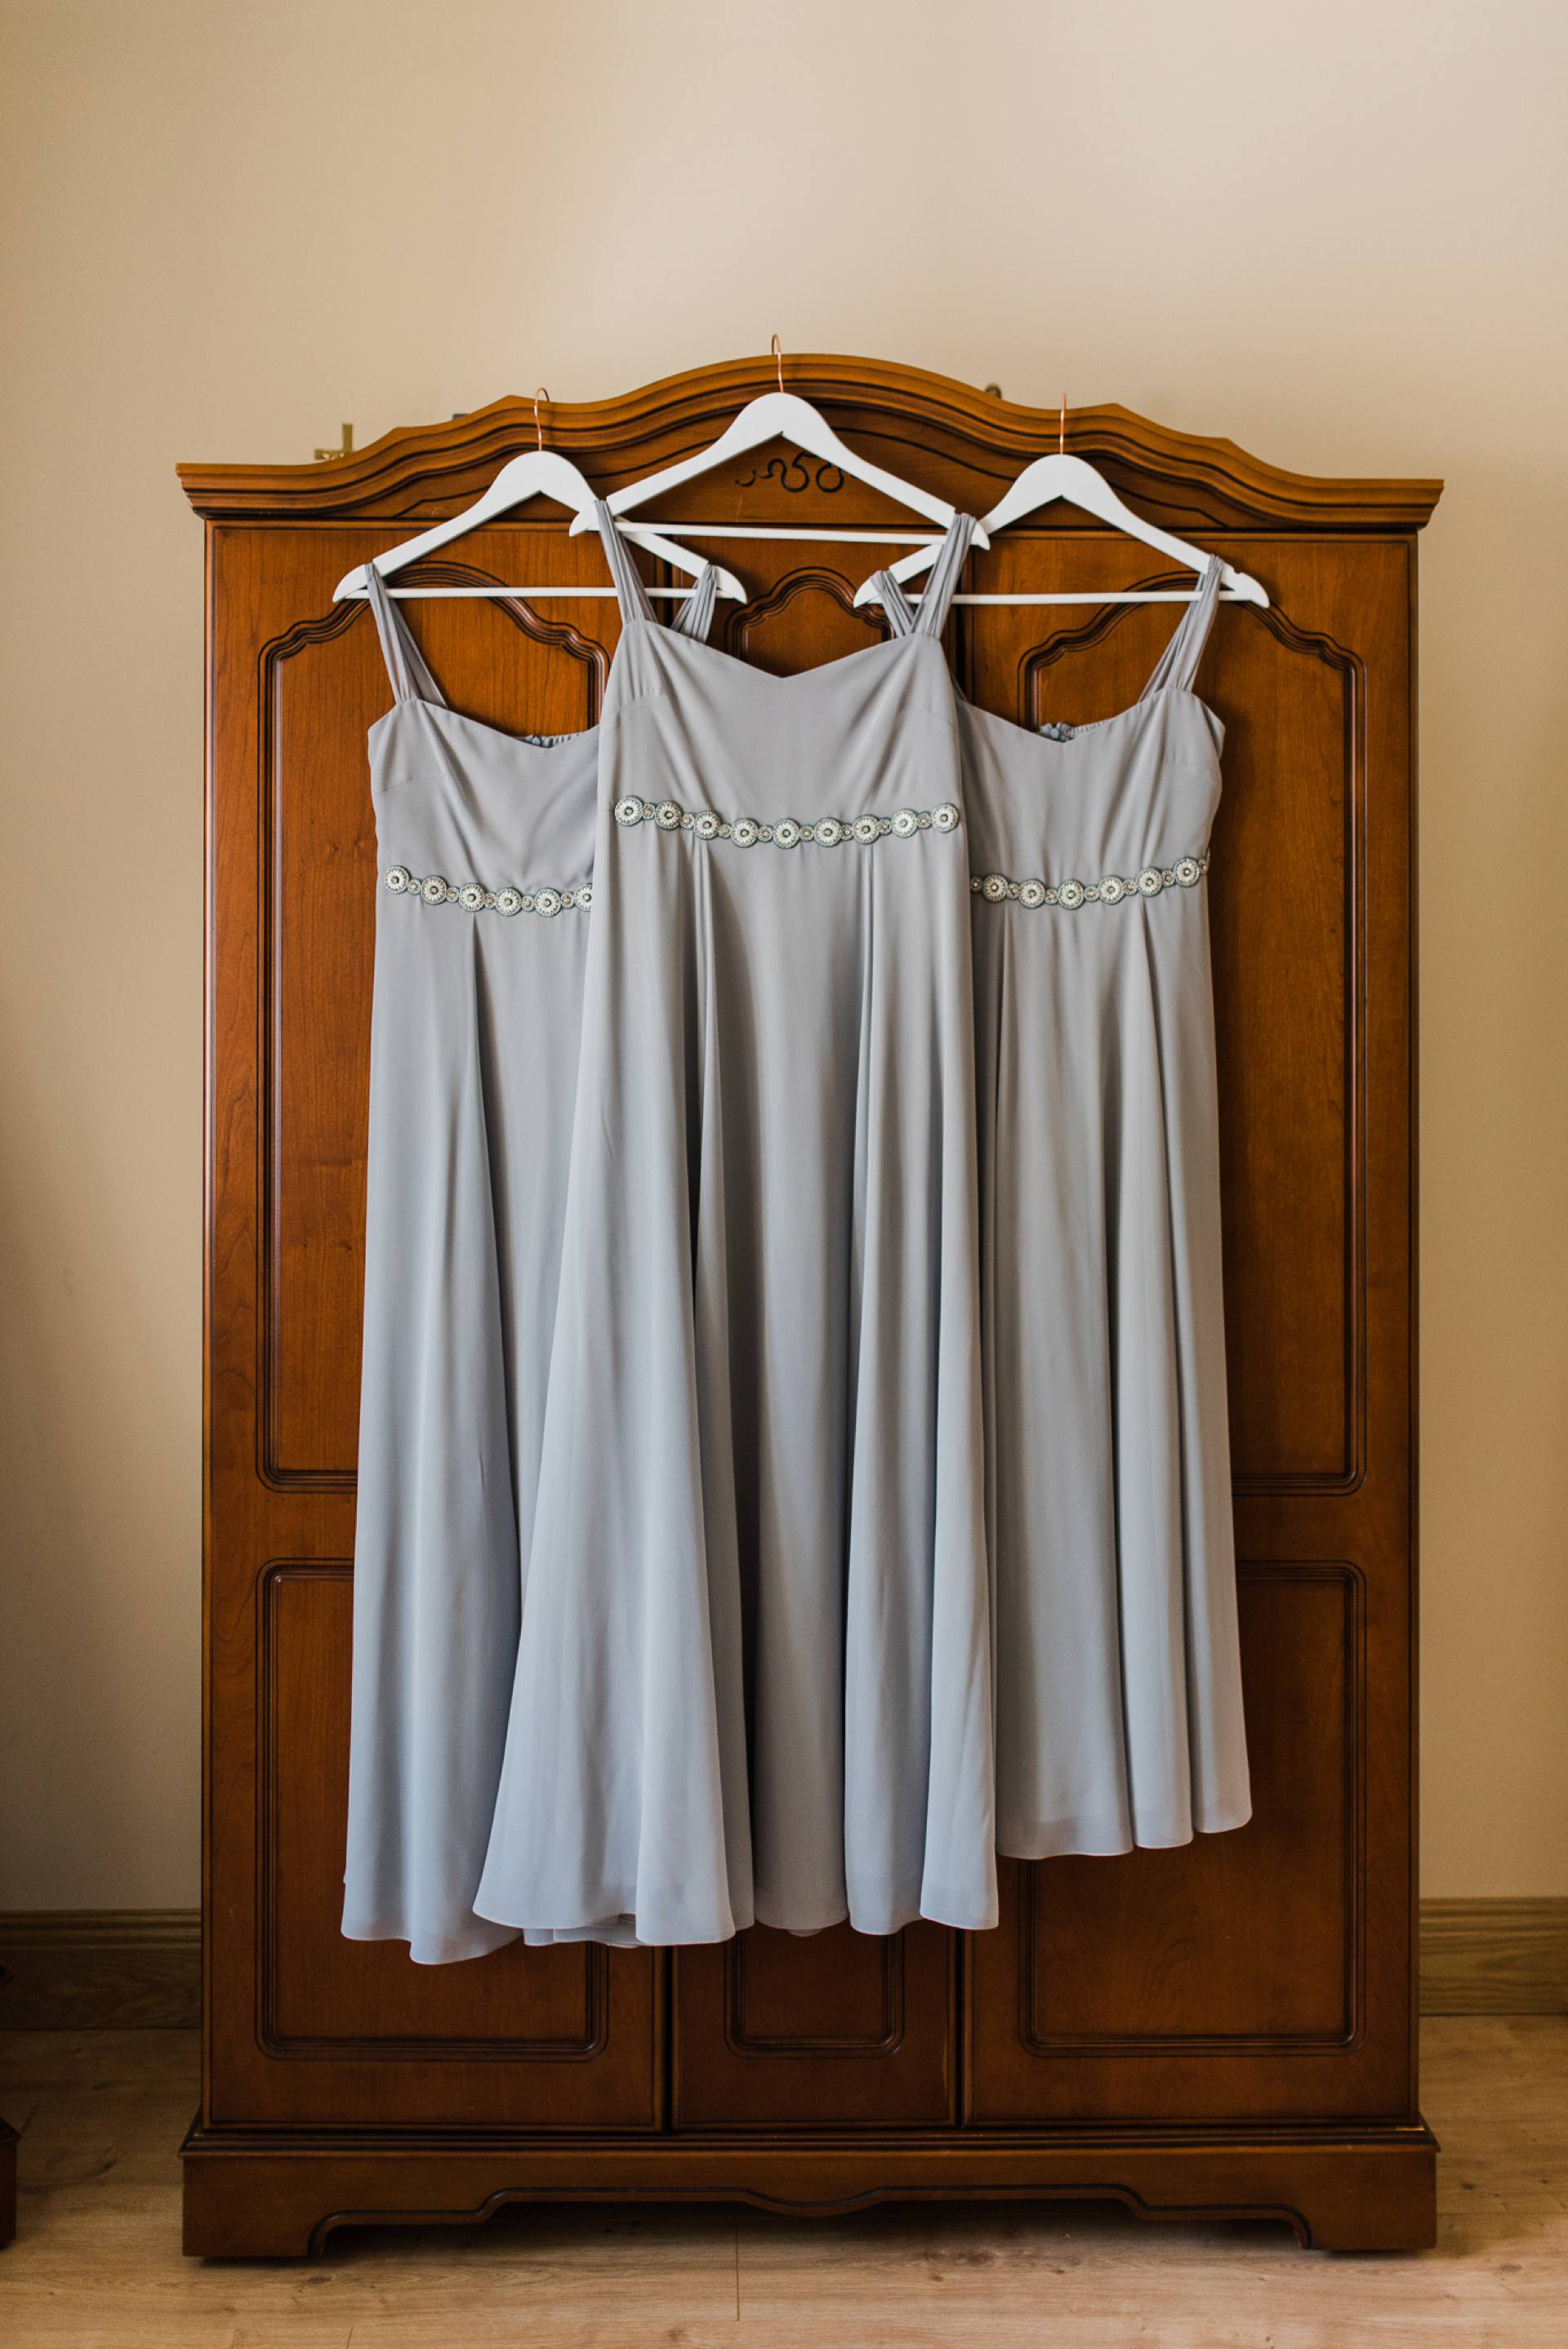 Grey bridesmaids dresses hanging up